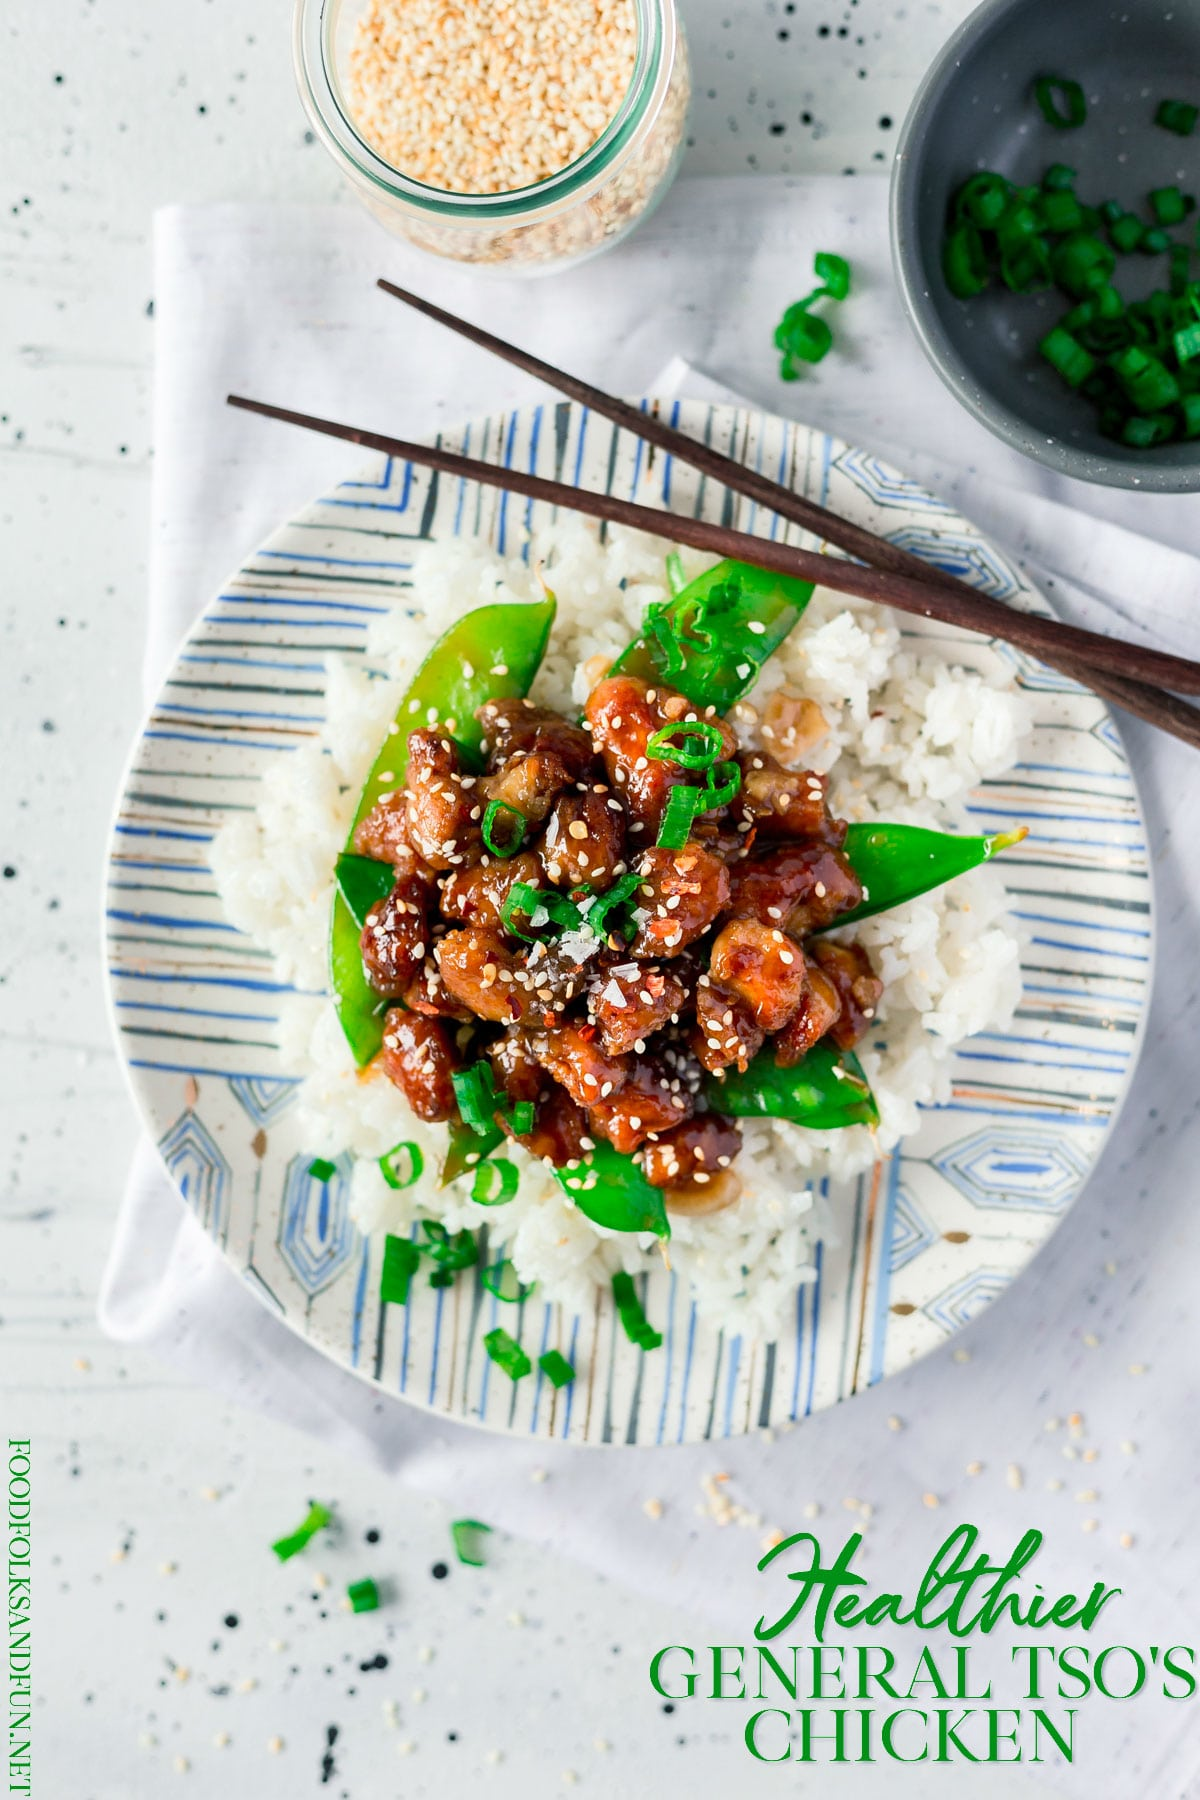 General Tso's Chicken is a takeout favorite that I've made a bit healthier. It's just as spicy, sweet, and zesty as your favorite Chinese takeout restaurant makes it! Make this General Tso Chicken recipe in just 30 minutes! via @foodfolksandfun